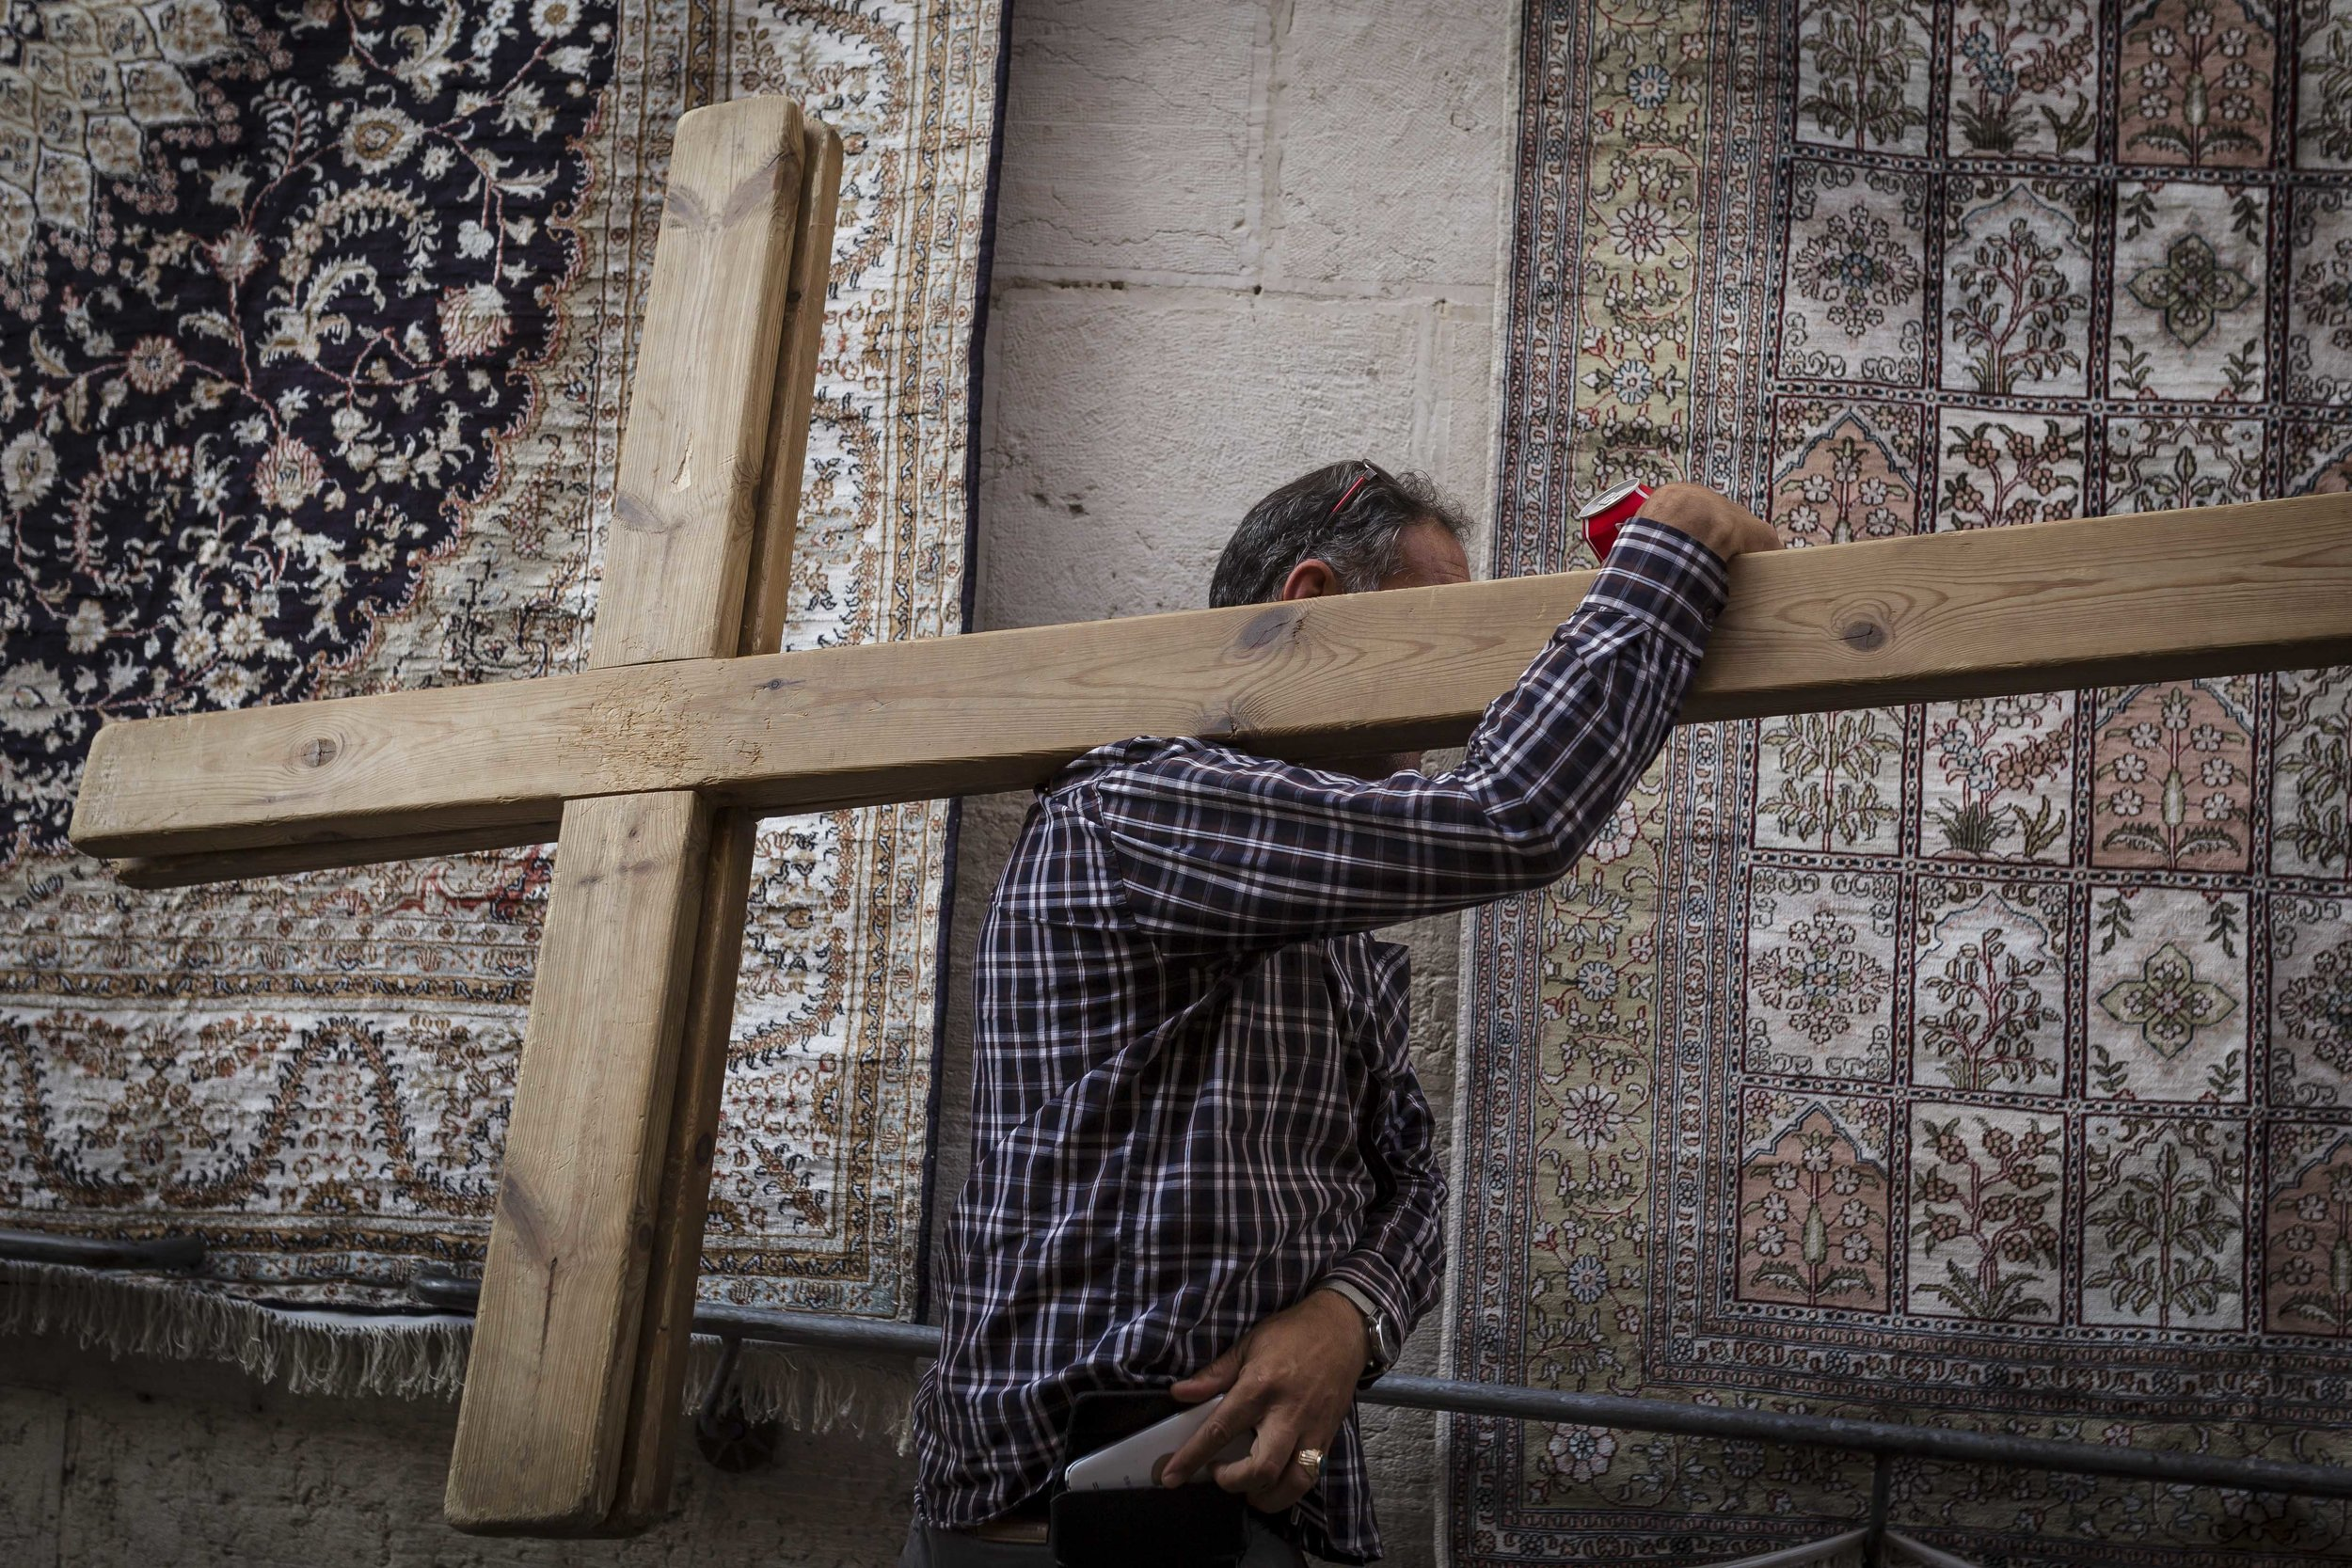 An arab men carries two crosses from the 9th station of the Via Dolorosa to the first station. Seen in Jerusalem's Old City on October 23th, 2016. The circuitous route is believed by many to follow the path that Jesus walked, carrying his cross, on the way to his crucifixion.